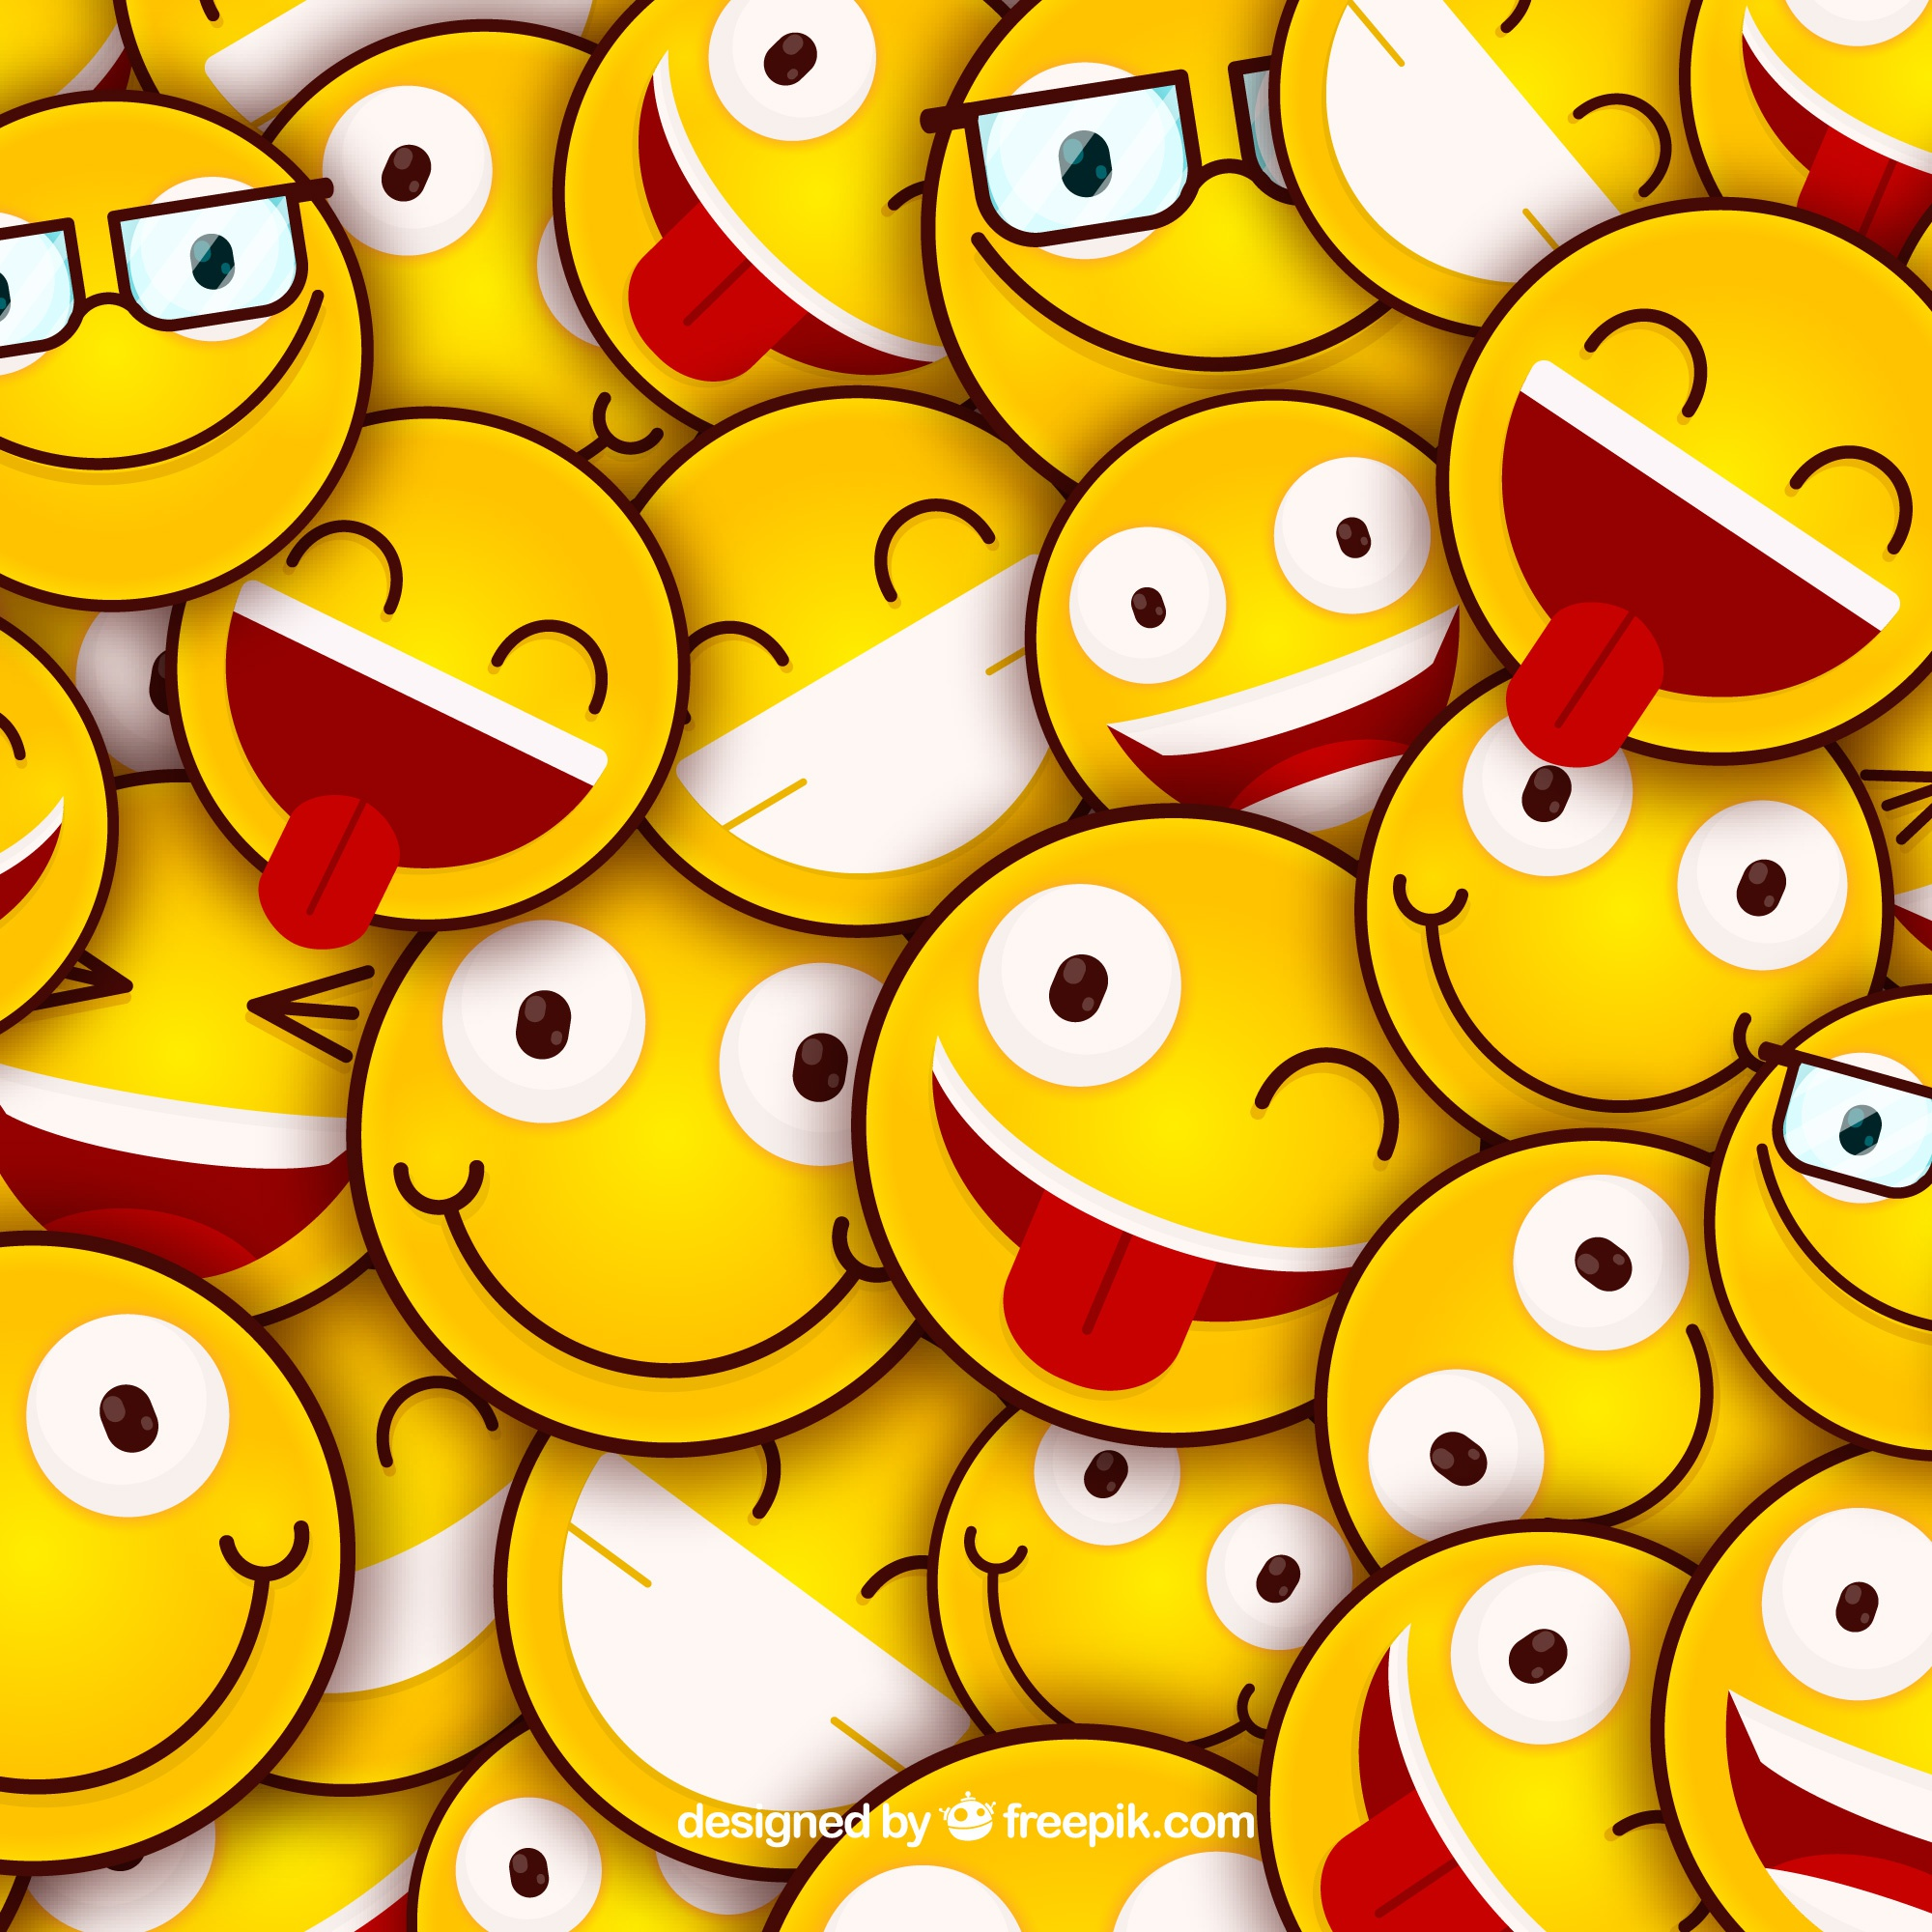 Colored background with emoticons in flat design